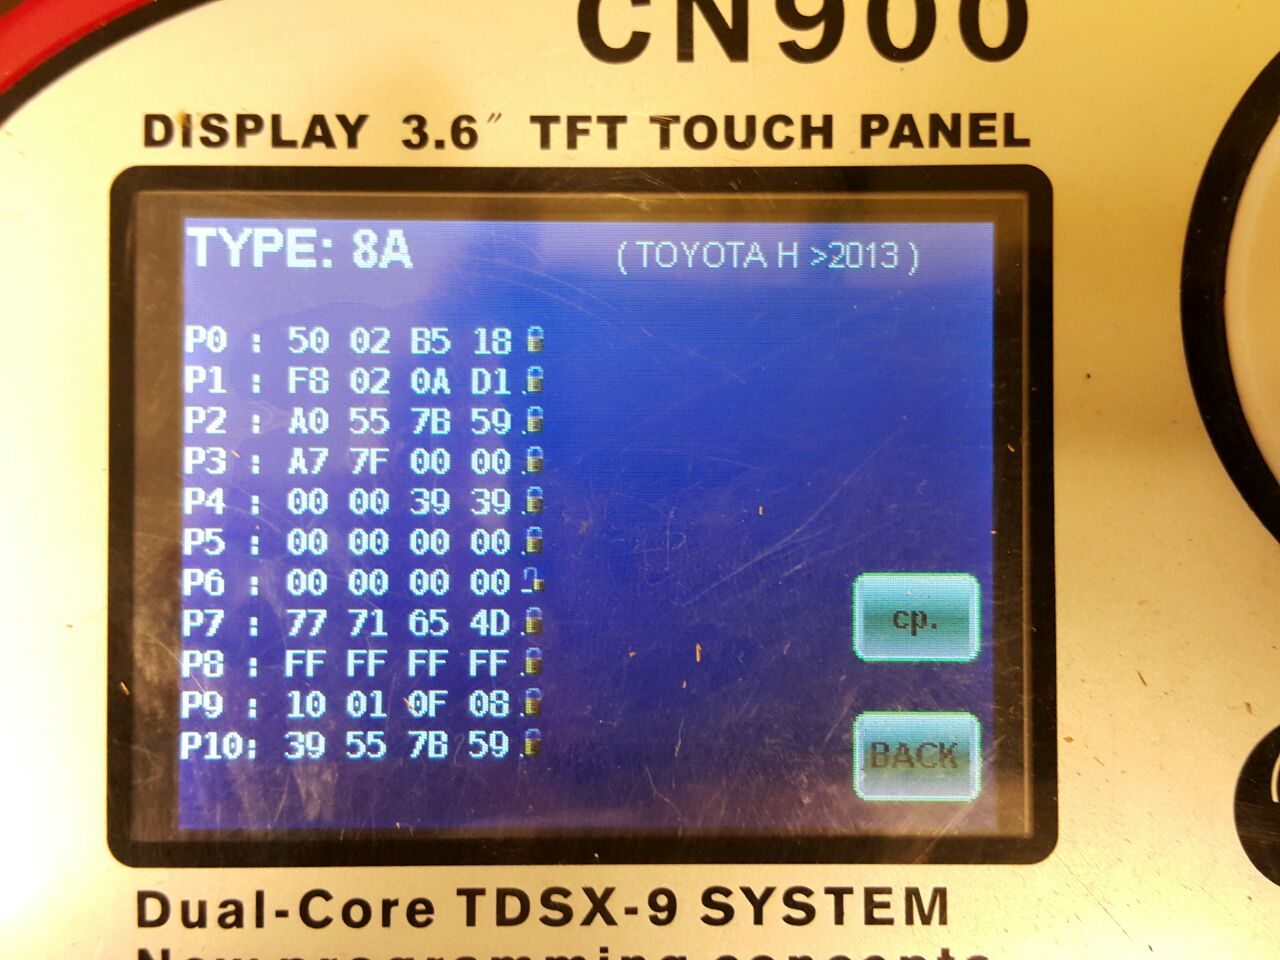 3 ways to tell if Toyota transponder key is G chip or H chip